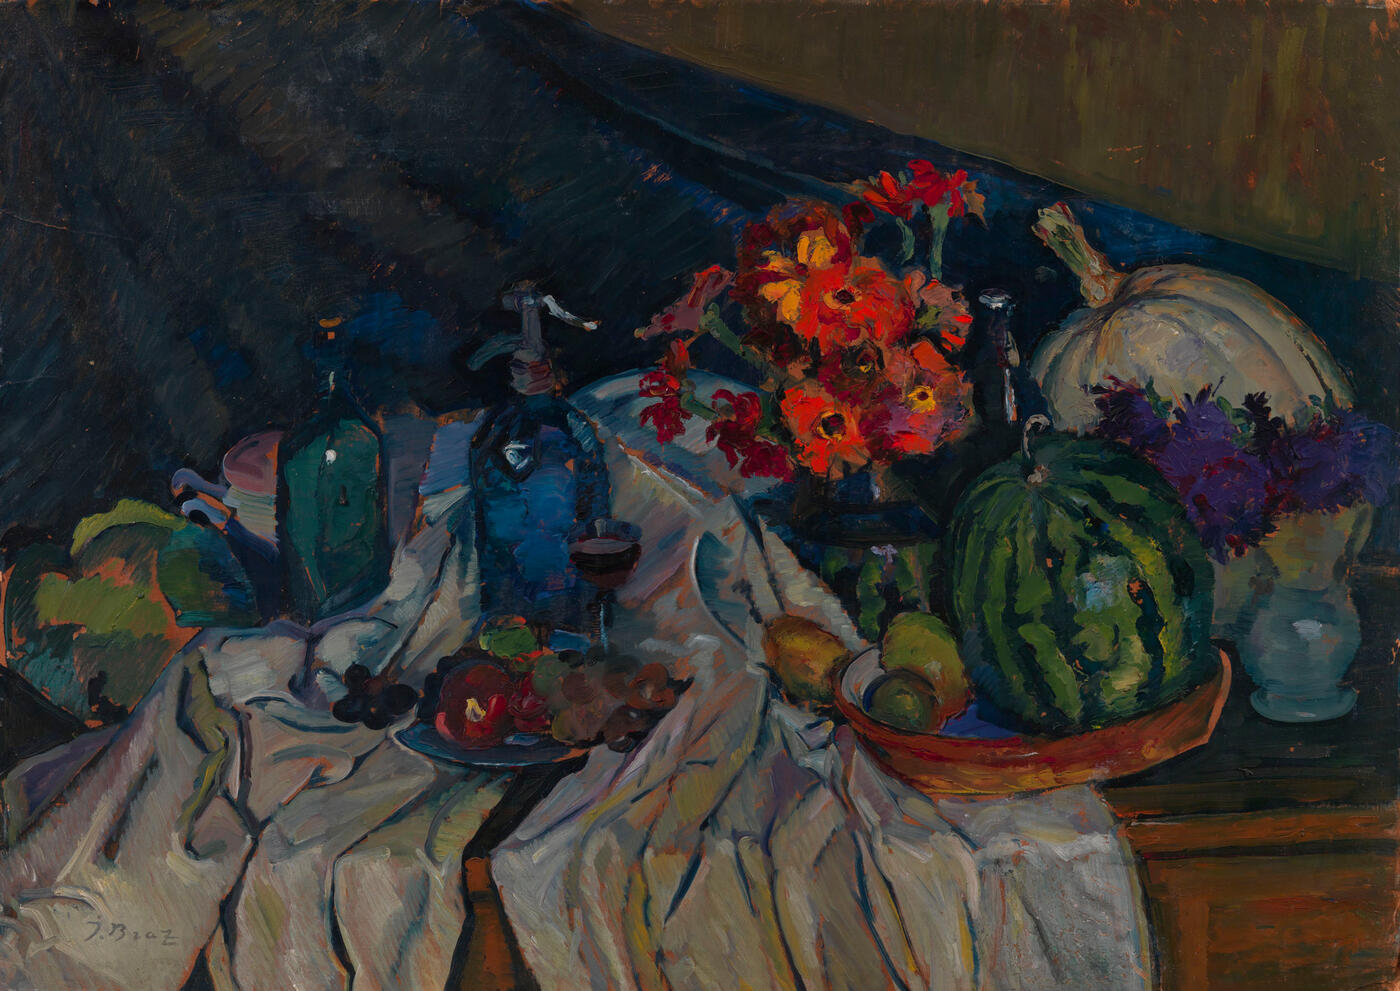 Still Life with Watermelon and Flowers